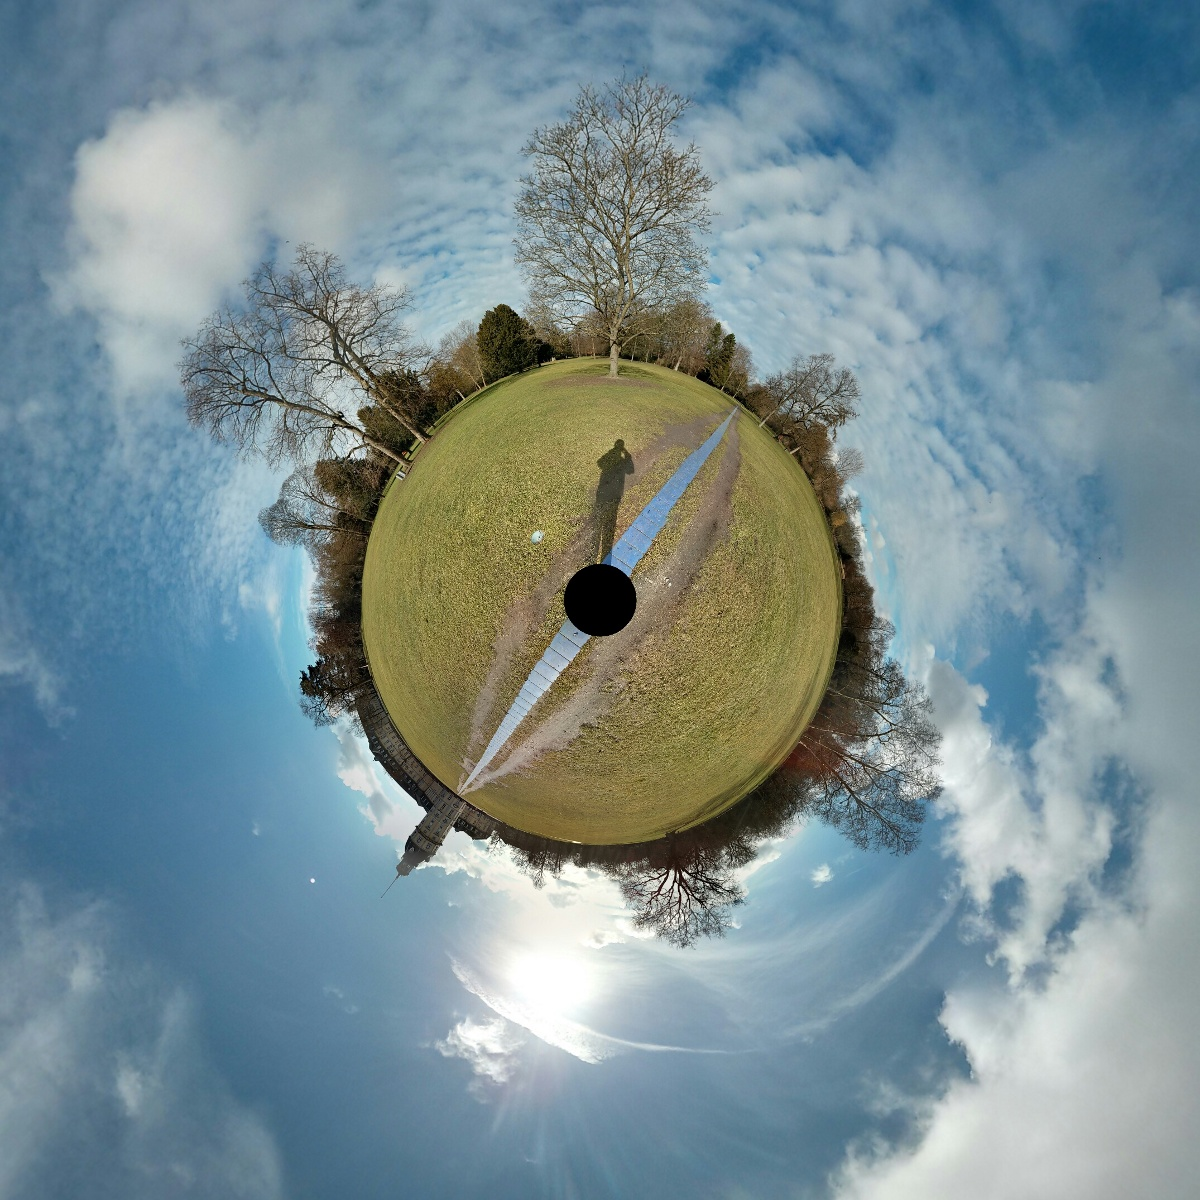 Karlsruhe - Tiny World